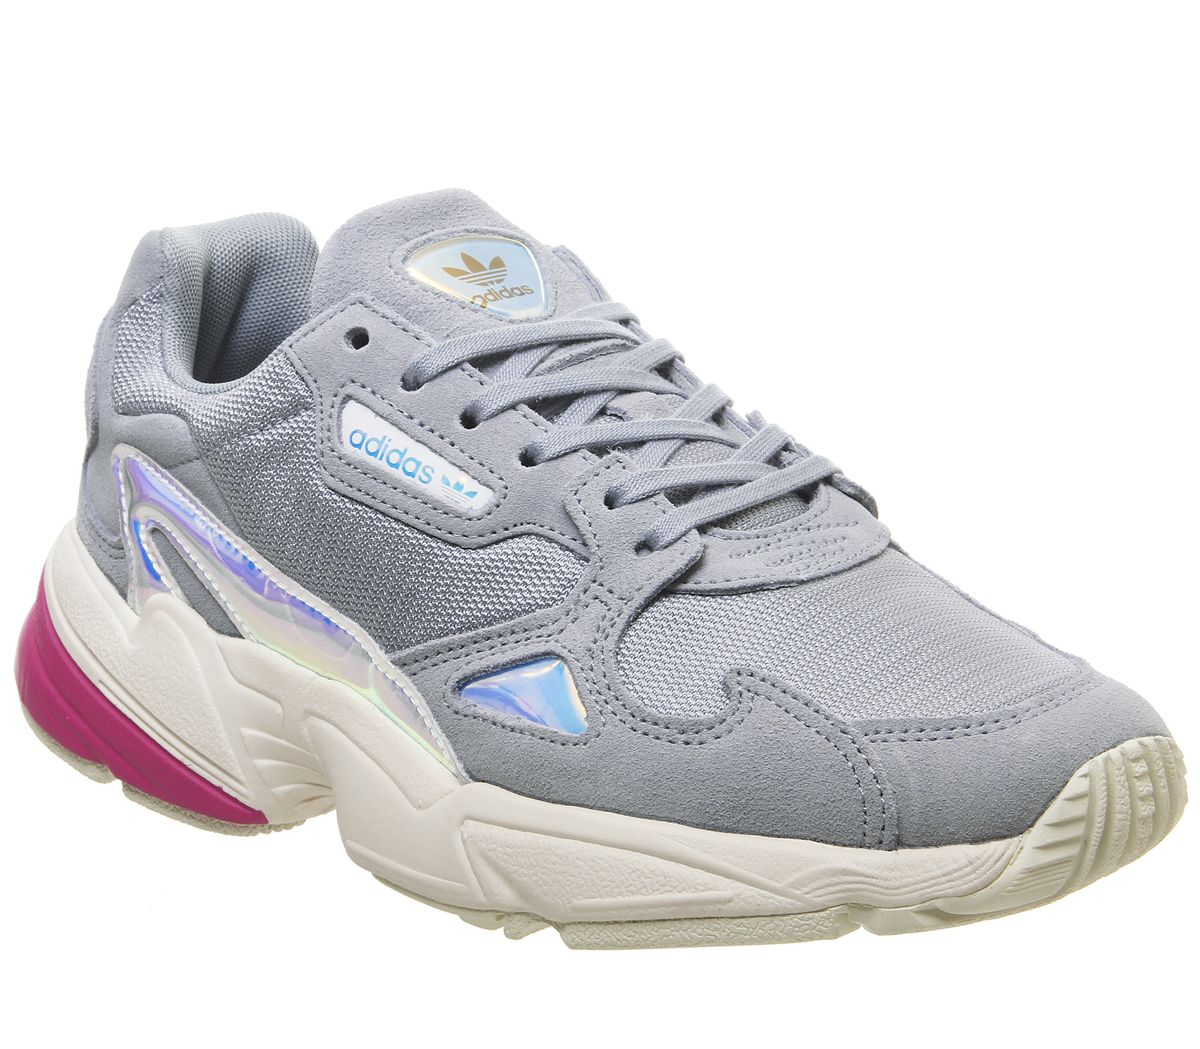 Details about Womens Adidas Falcon Trainers Light Grey Real Magenta  Iridescent Trainers Shoes